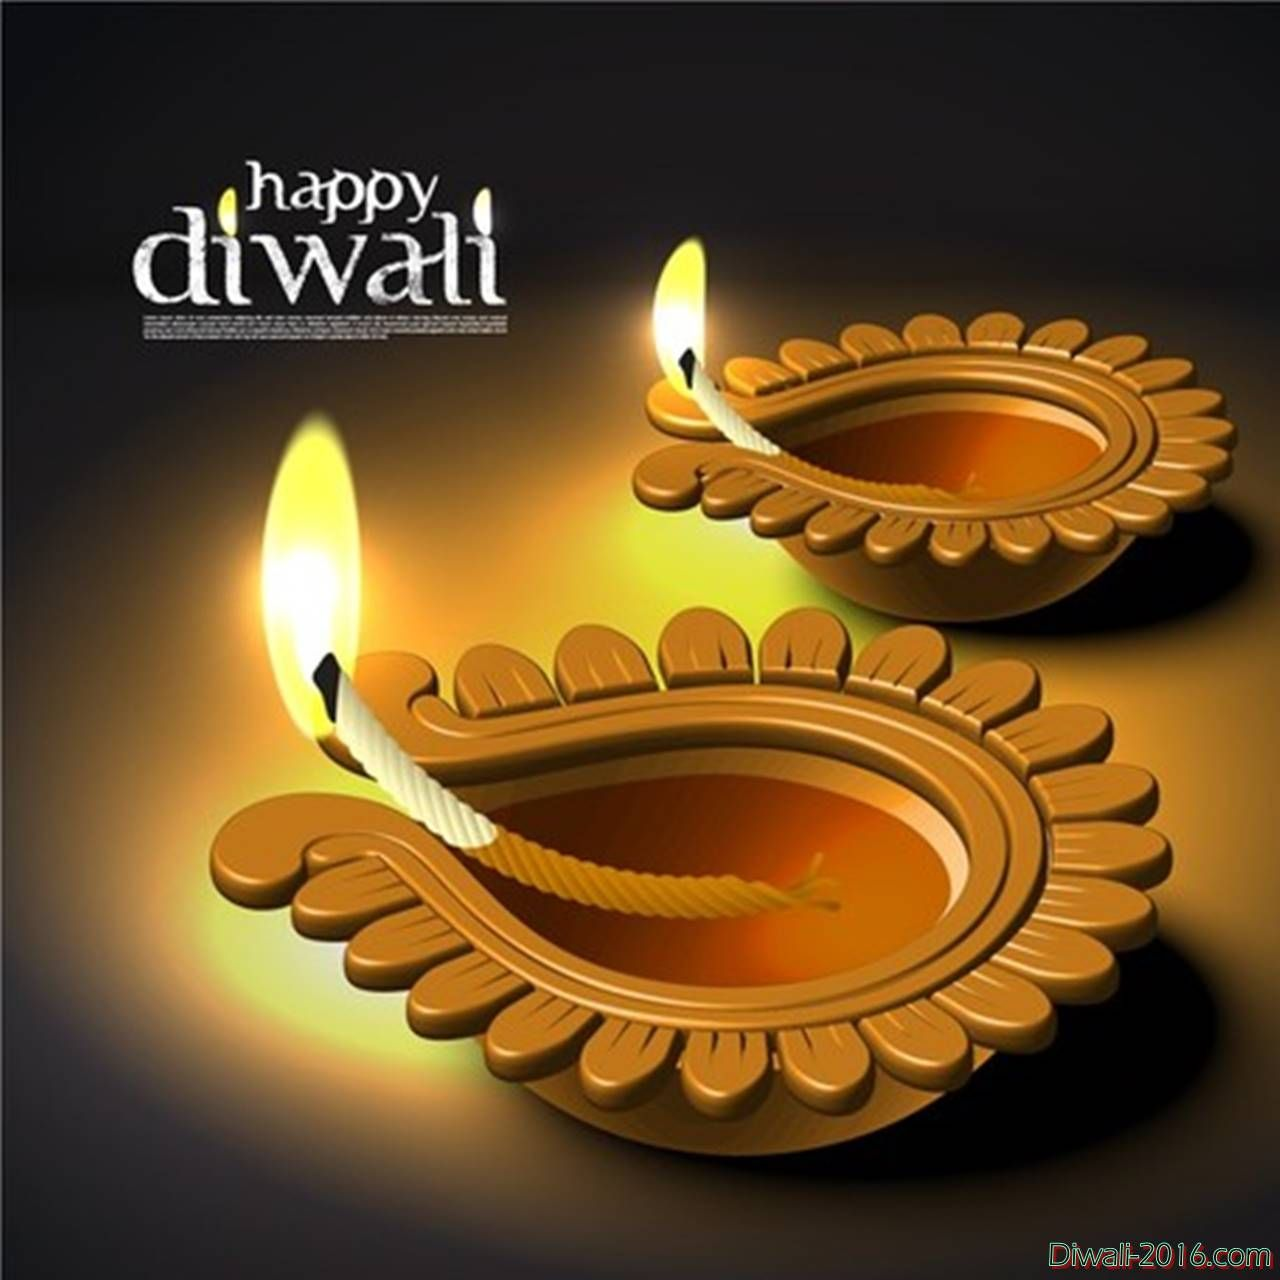 New Happy Diwali Image 31 Top Images Of Happy Diwali Wallpapers